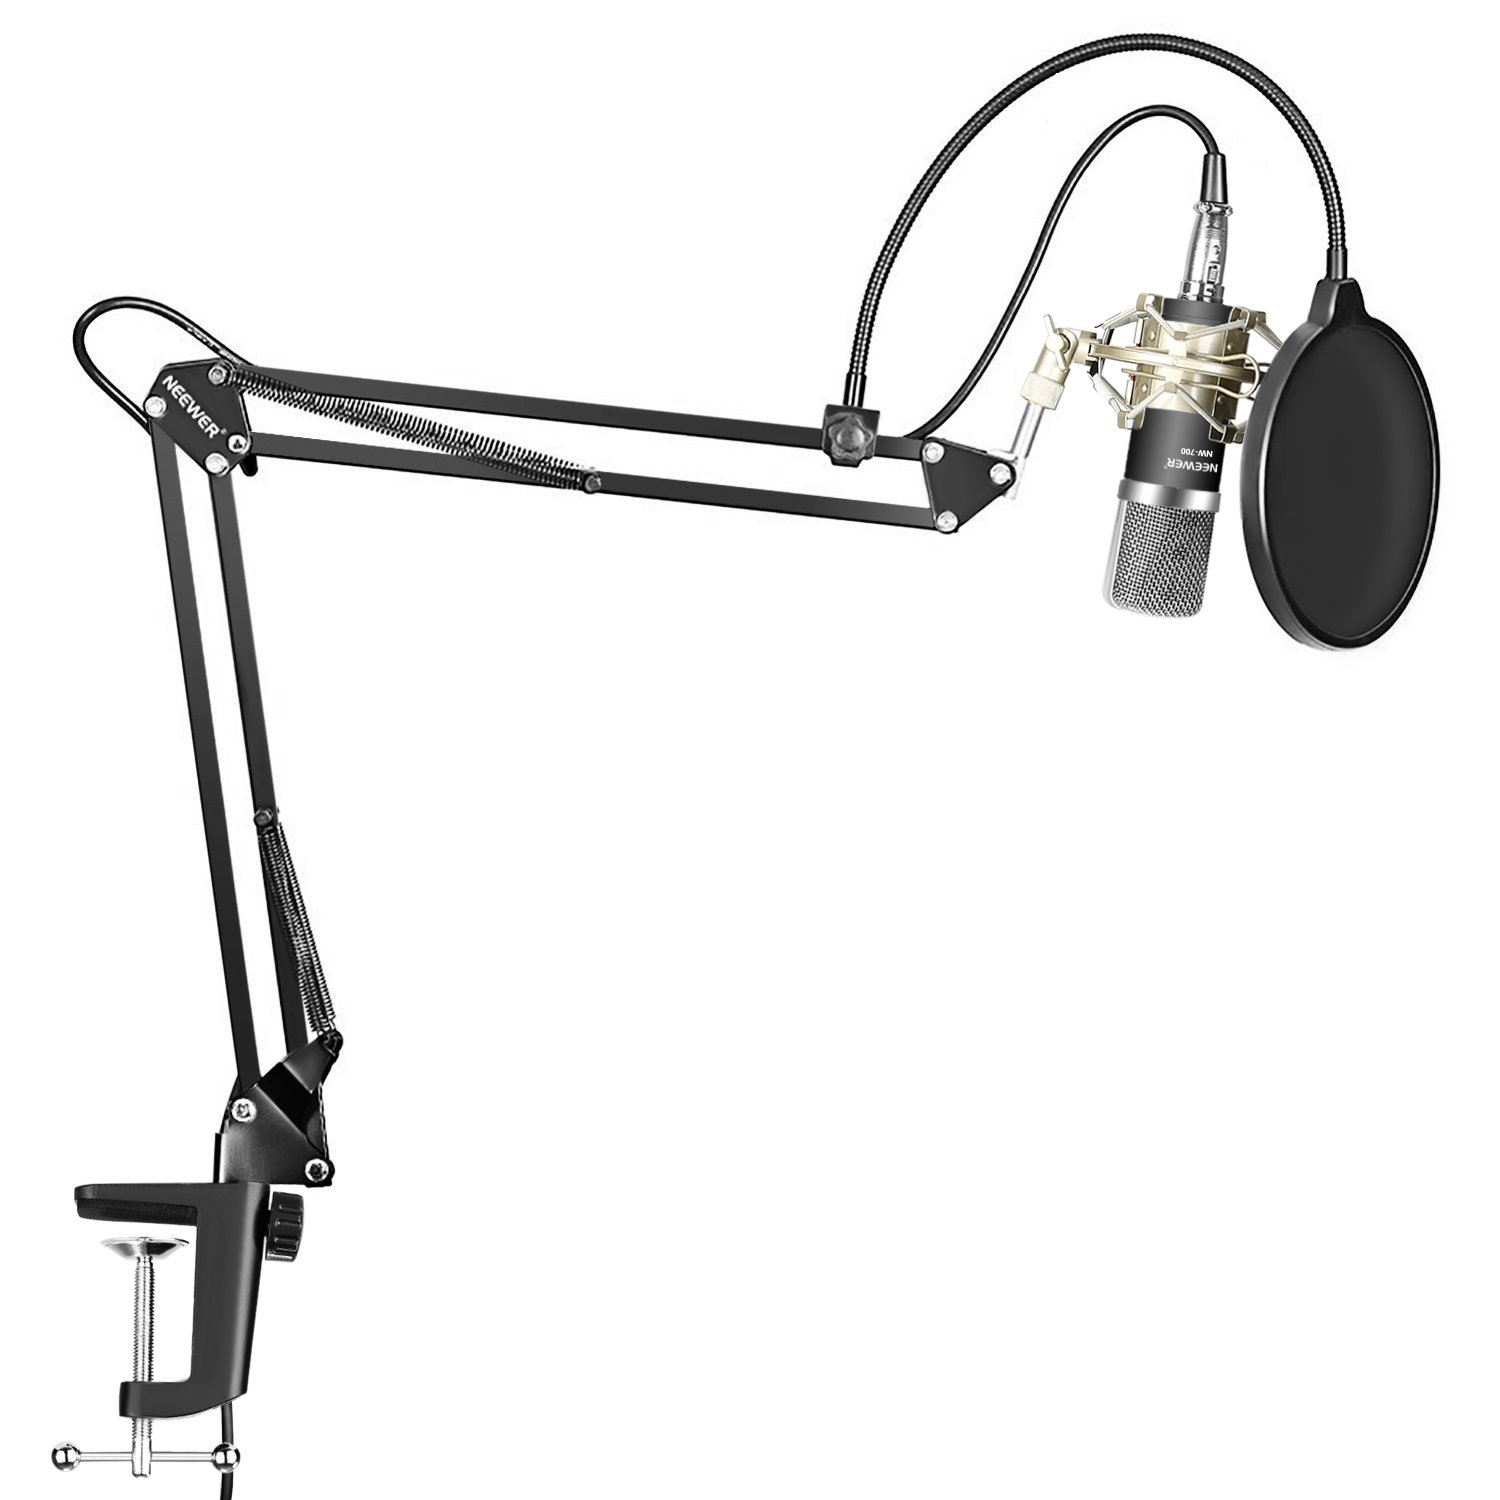 Neewer Professional Studio Broadcasting Recording Condenser Microphone & NW-35 Adjustable Recording Microphone Suspension Scissor Arm Stand with Shock Mount and Mounting Clamp Kit, Blue 40091686